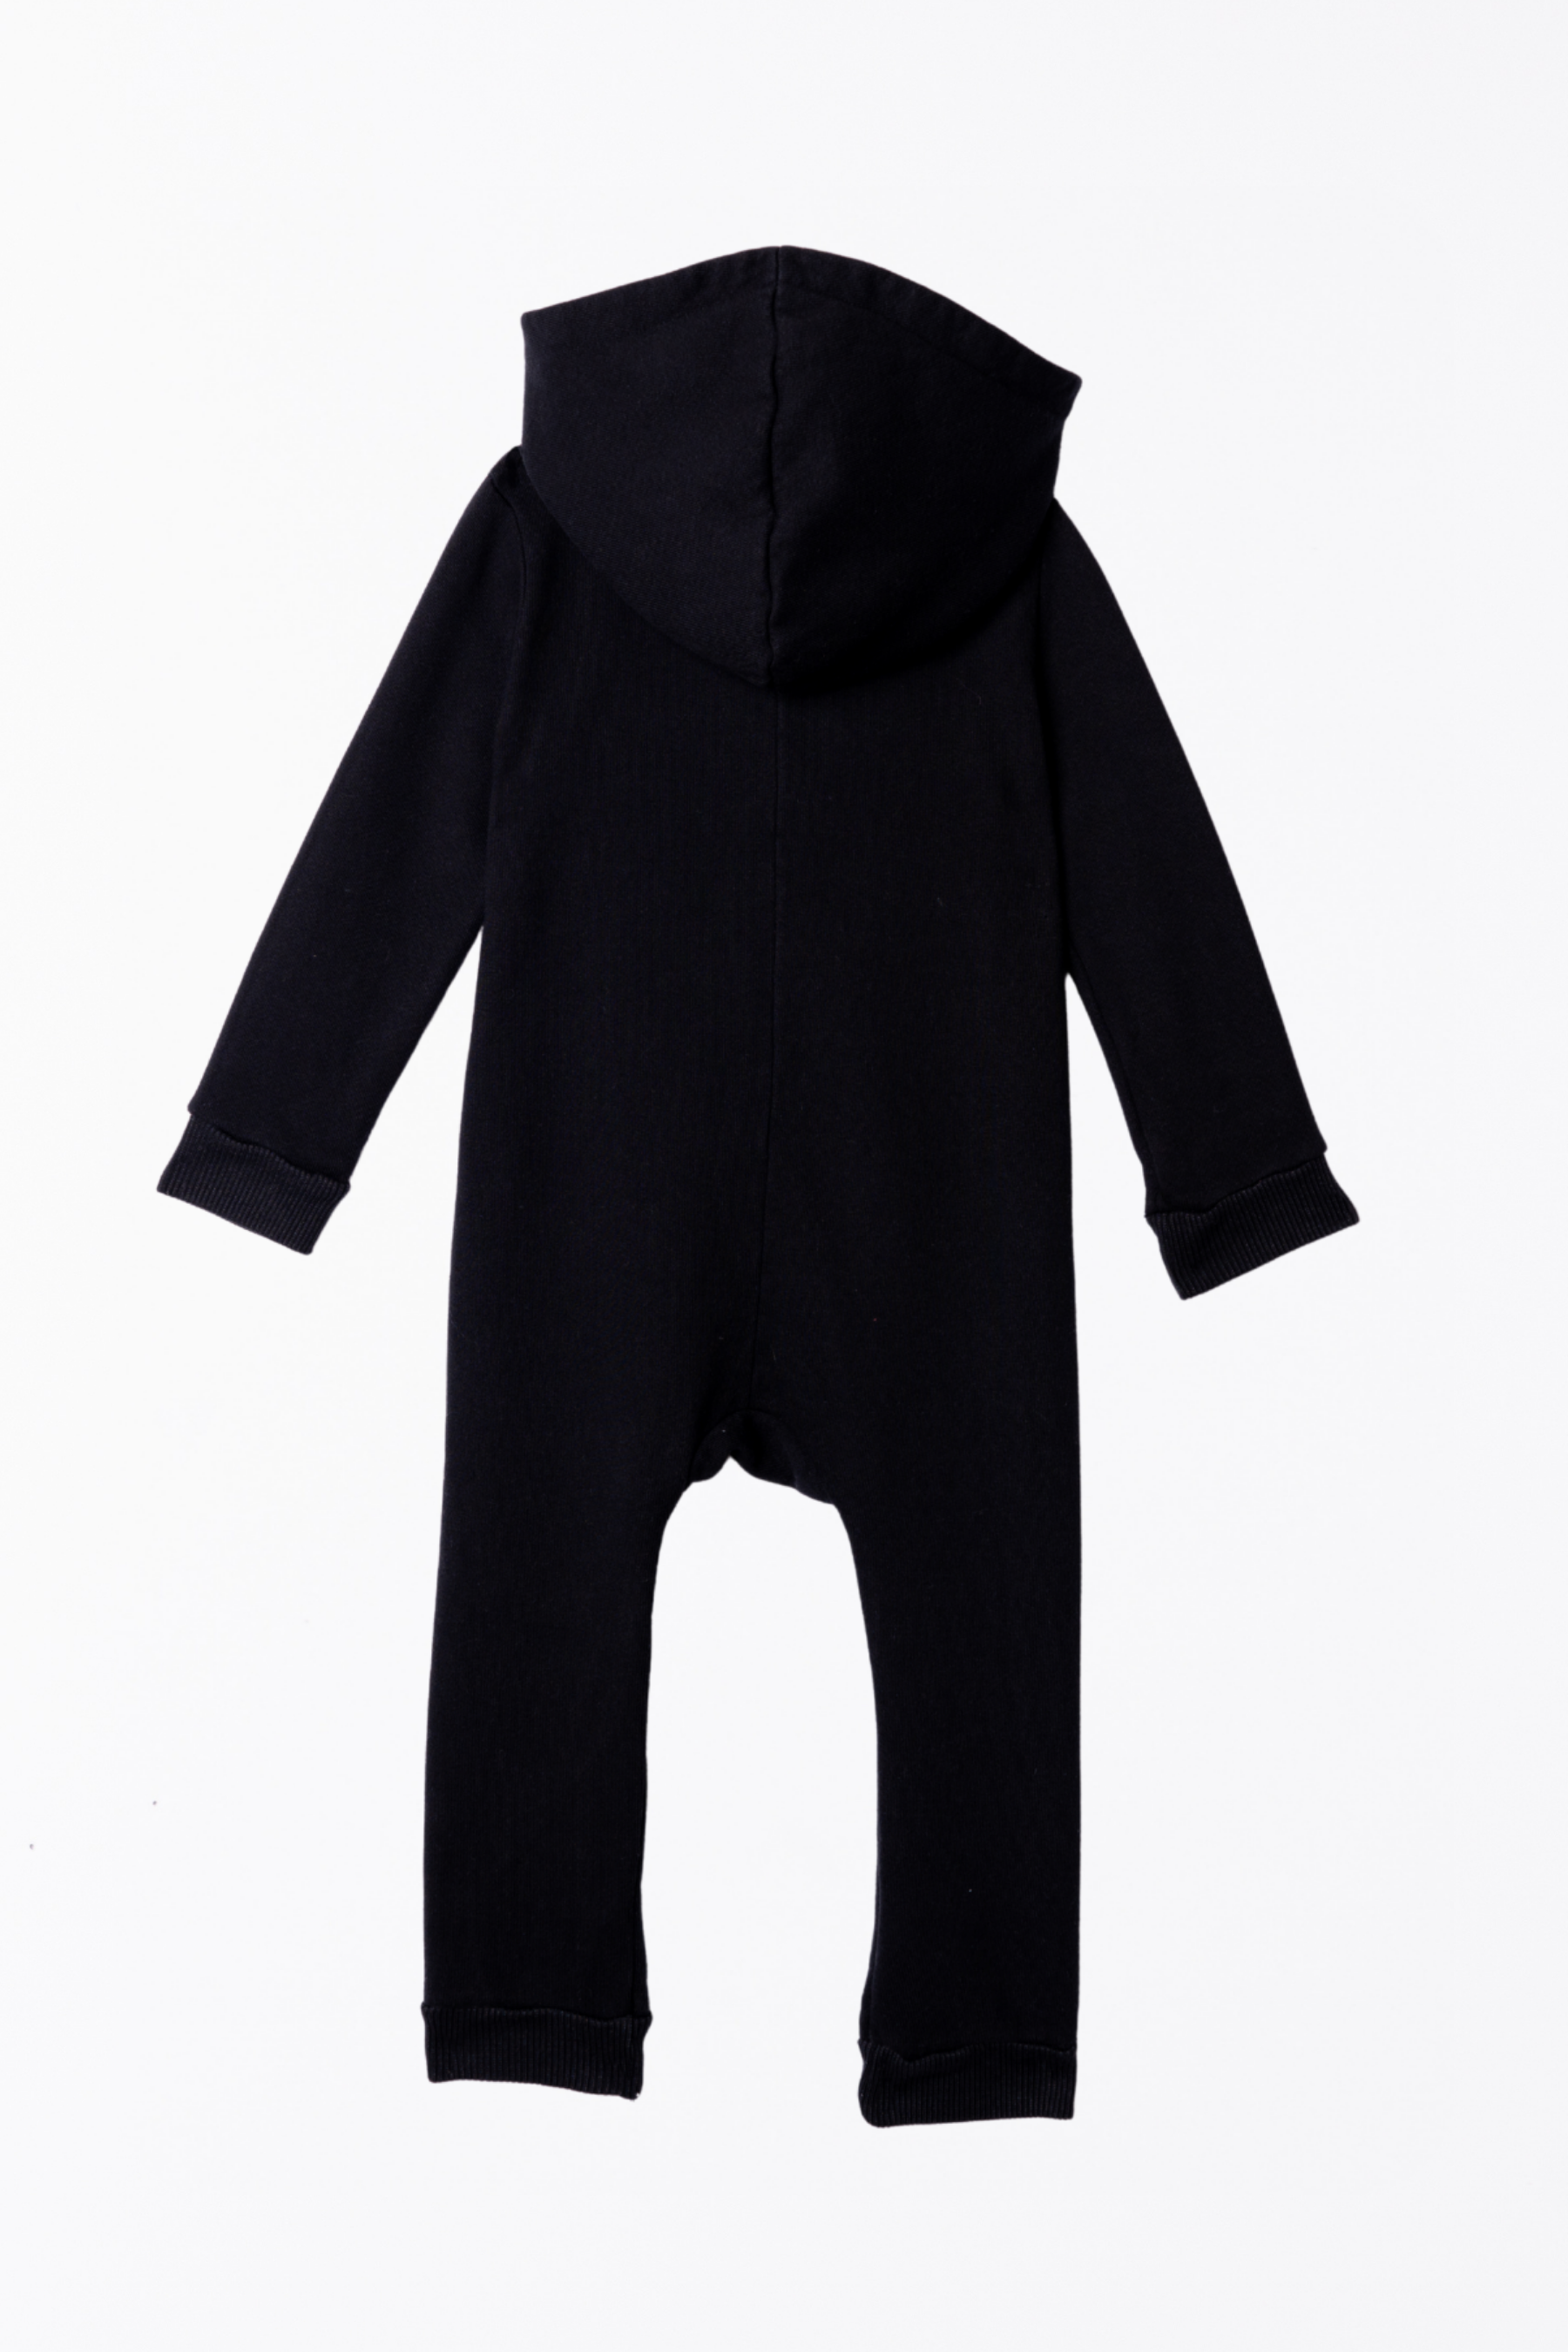 Lush Asymmetric Zip Hooded Romper - Black